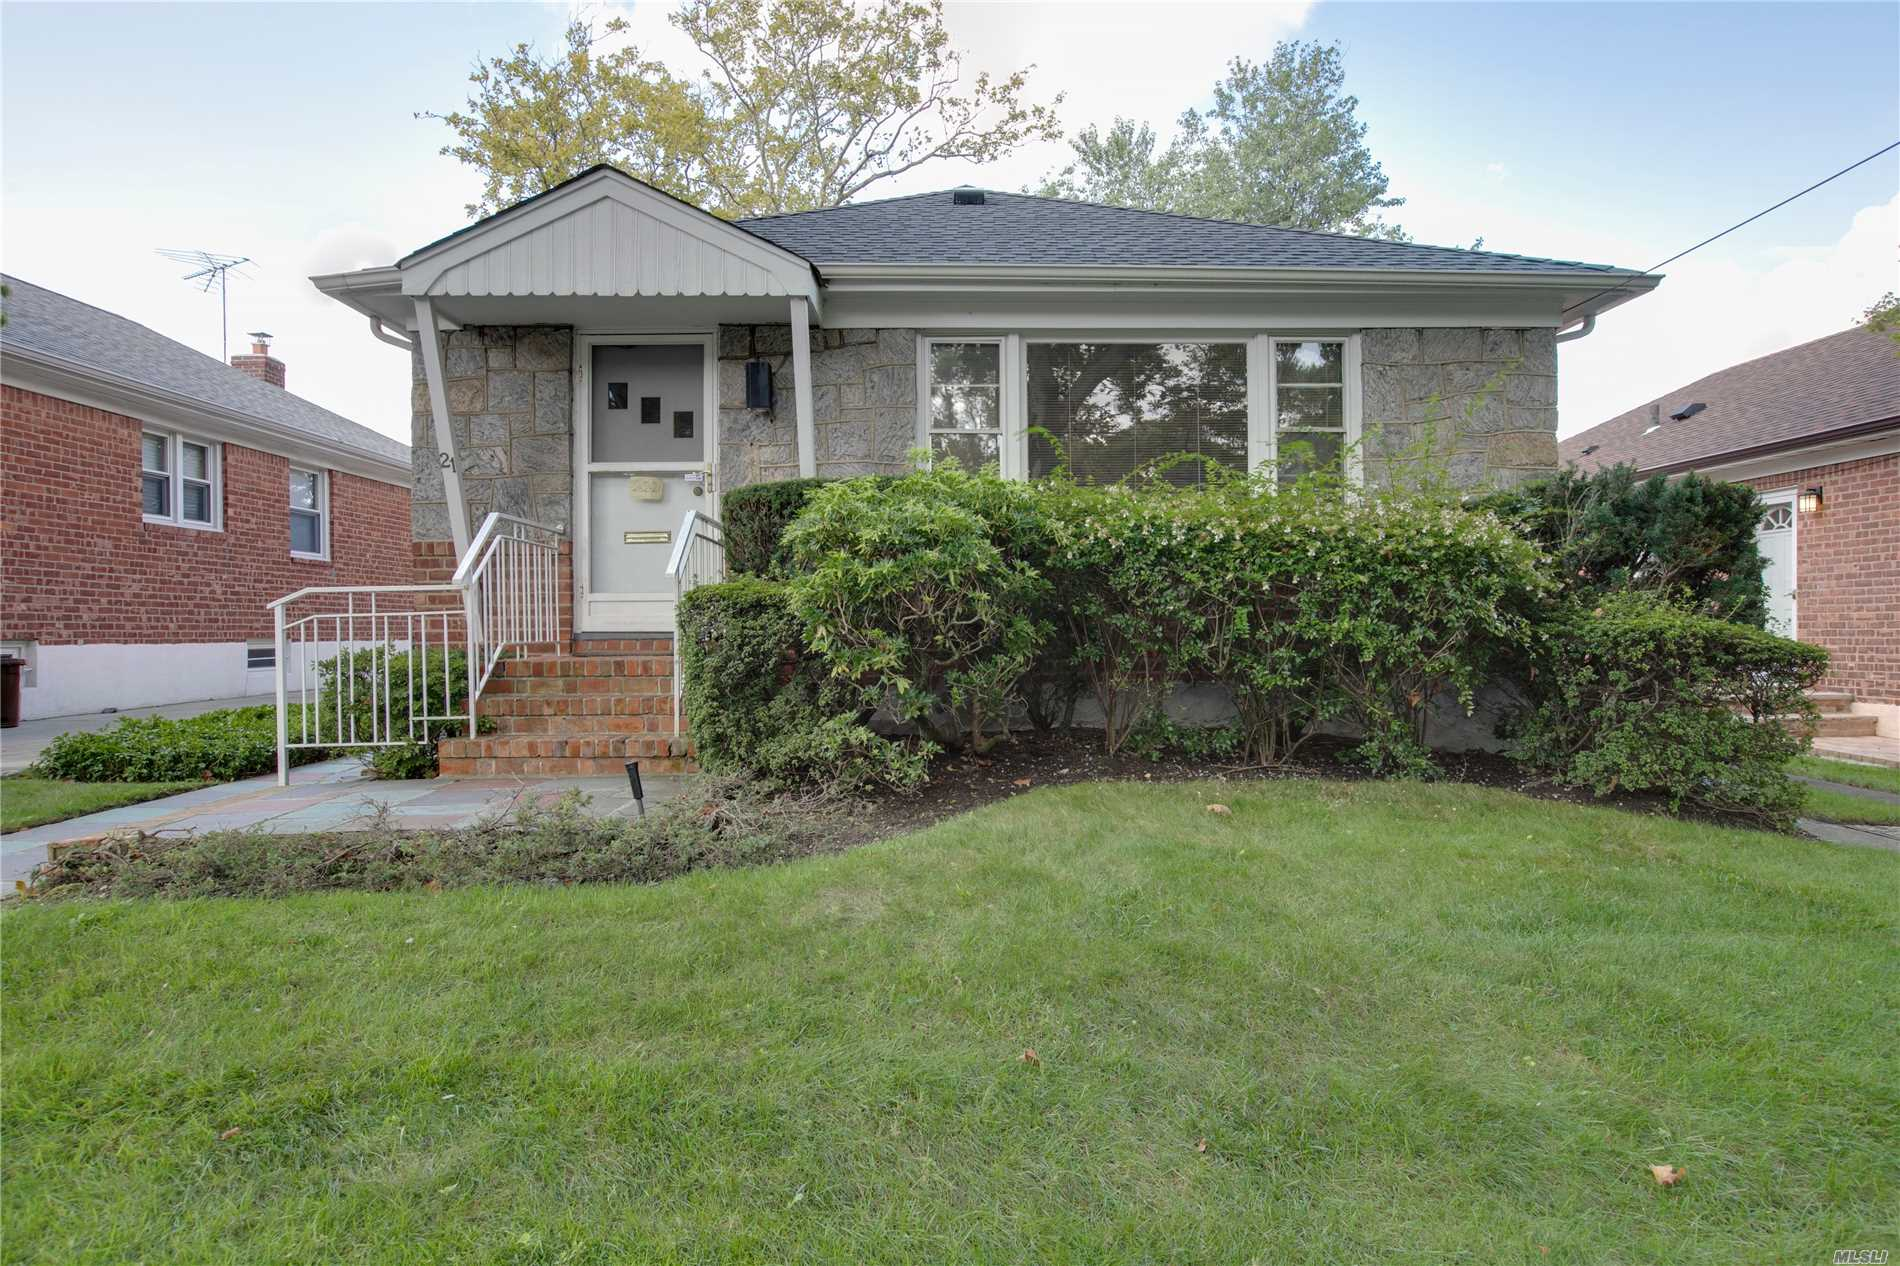 ** Whole House Rental ** In Quiet Neighborhood. Detached Brick Ranch 3 Brs, 2 Baths. Finished Basement. Private Backyard. Excellent Condition! Prime Little Neck Location! School District #26. Close To Shopping, Bus, Schools, Major Highway Etc.